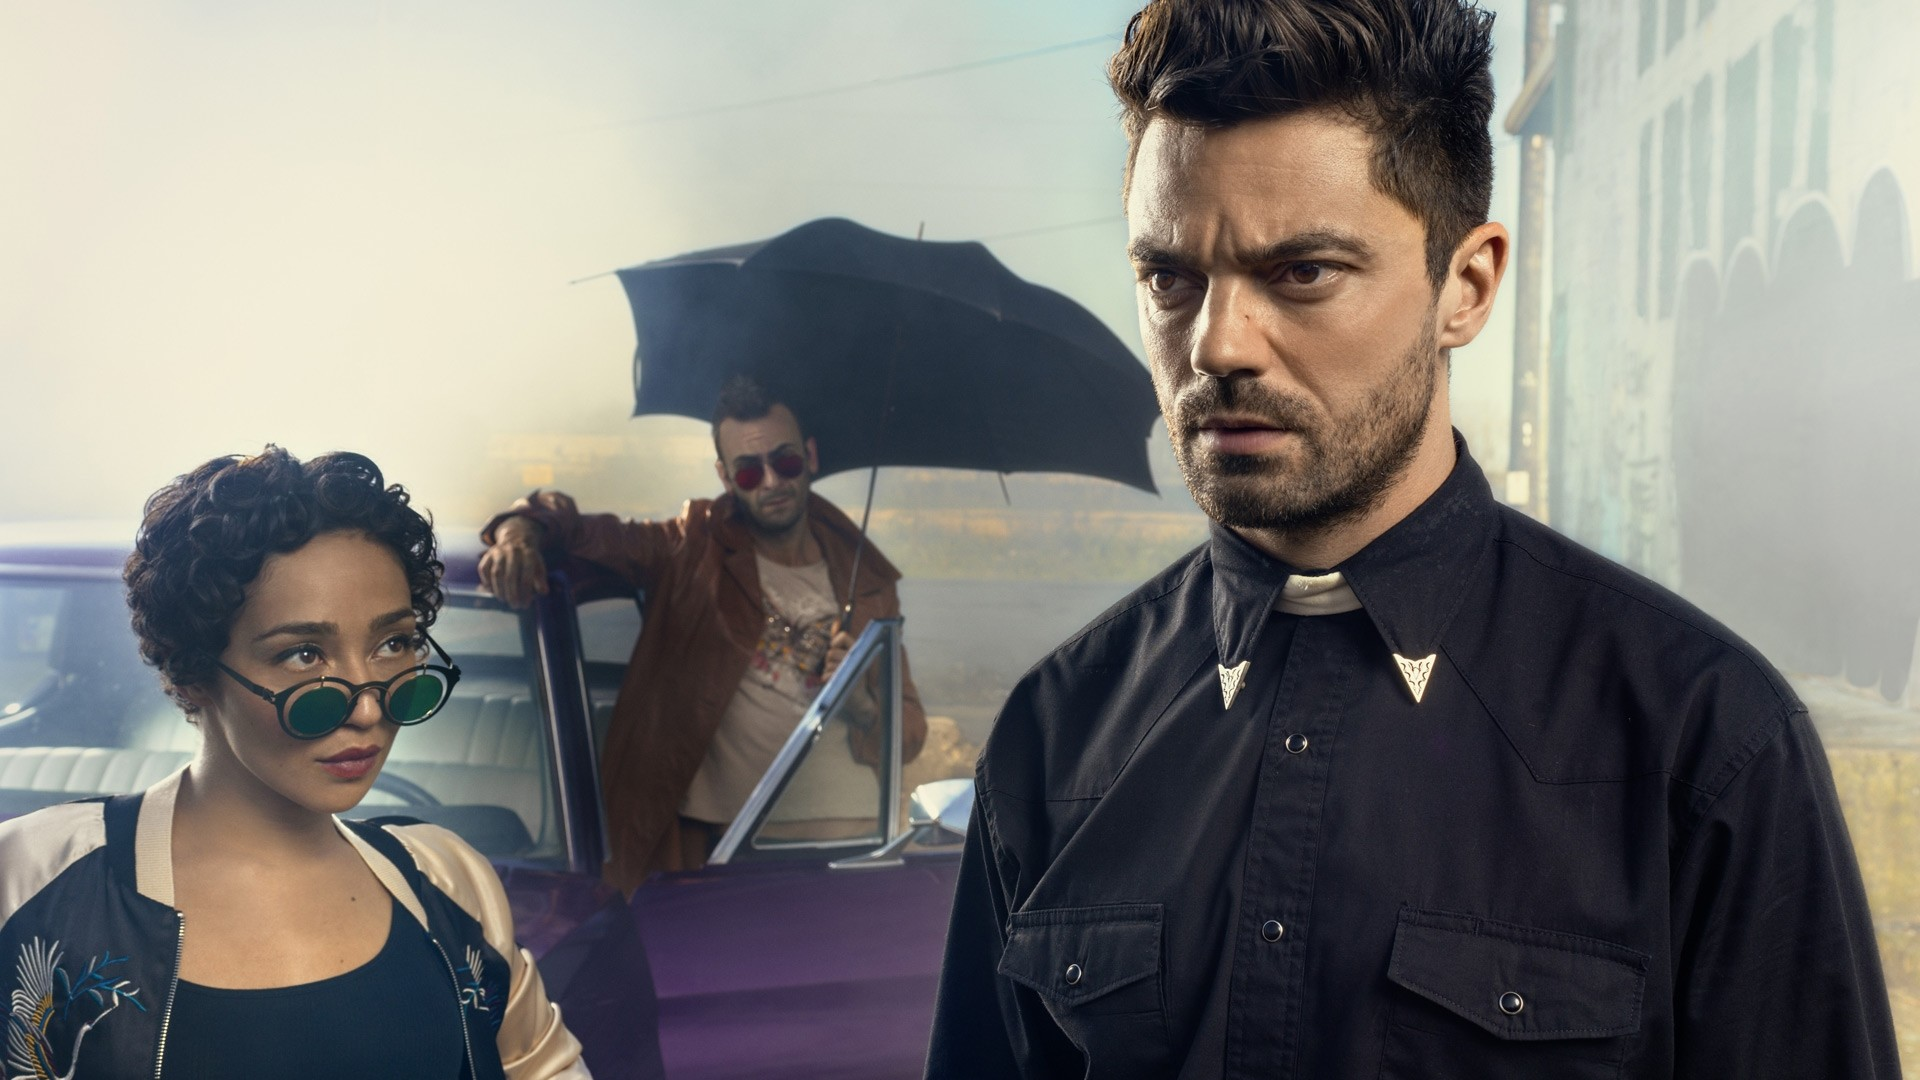 1920x1080 Preacher Source: Keys: preacher, television, wallpaper, wallpapers.  Submitted Anonymously 6 months ago